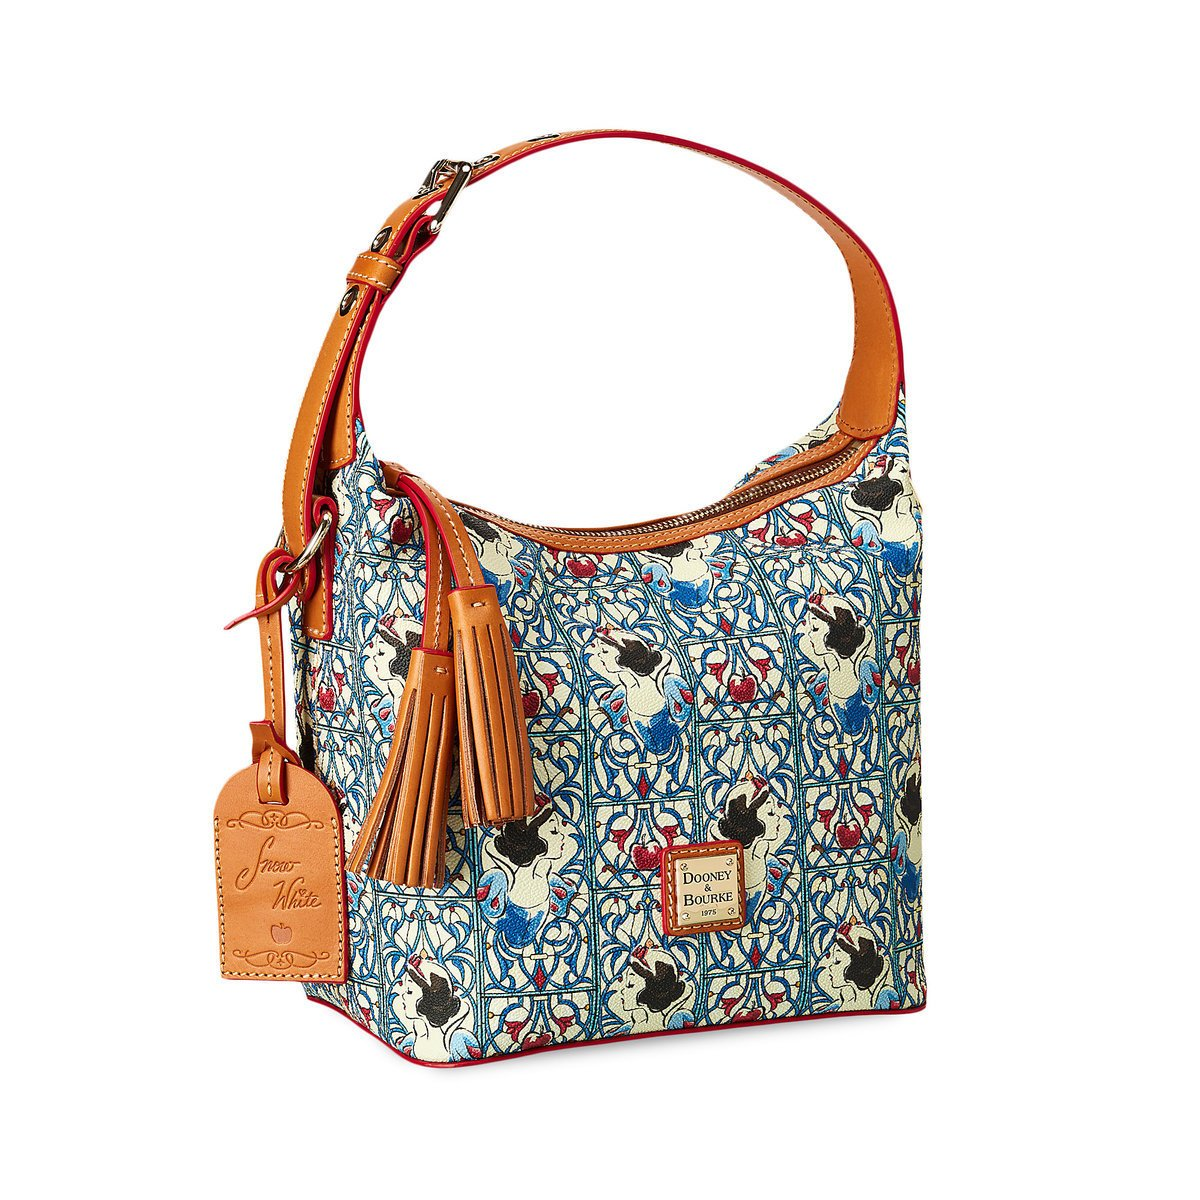 Amazon.com: Disney Dooney & Bourke Princess Snow White Tassel Crossbody  Bag: Shoes